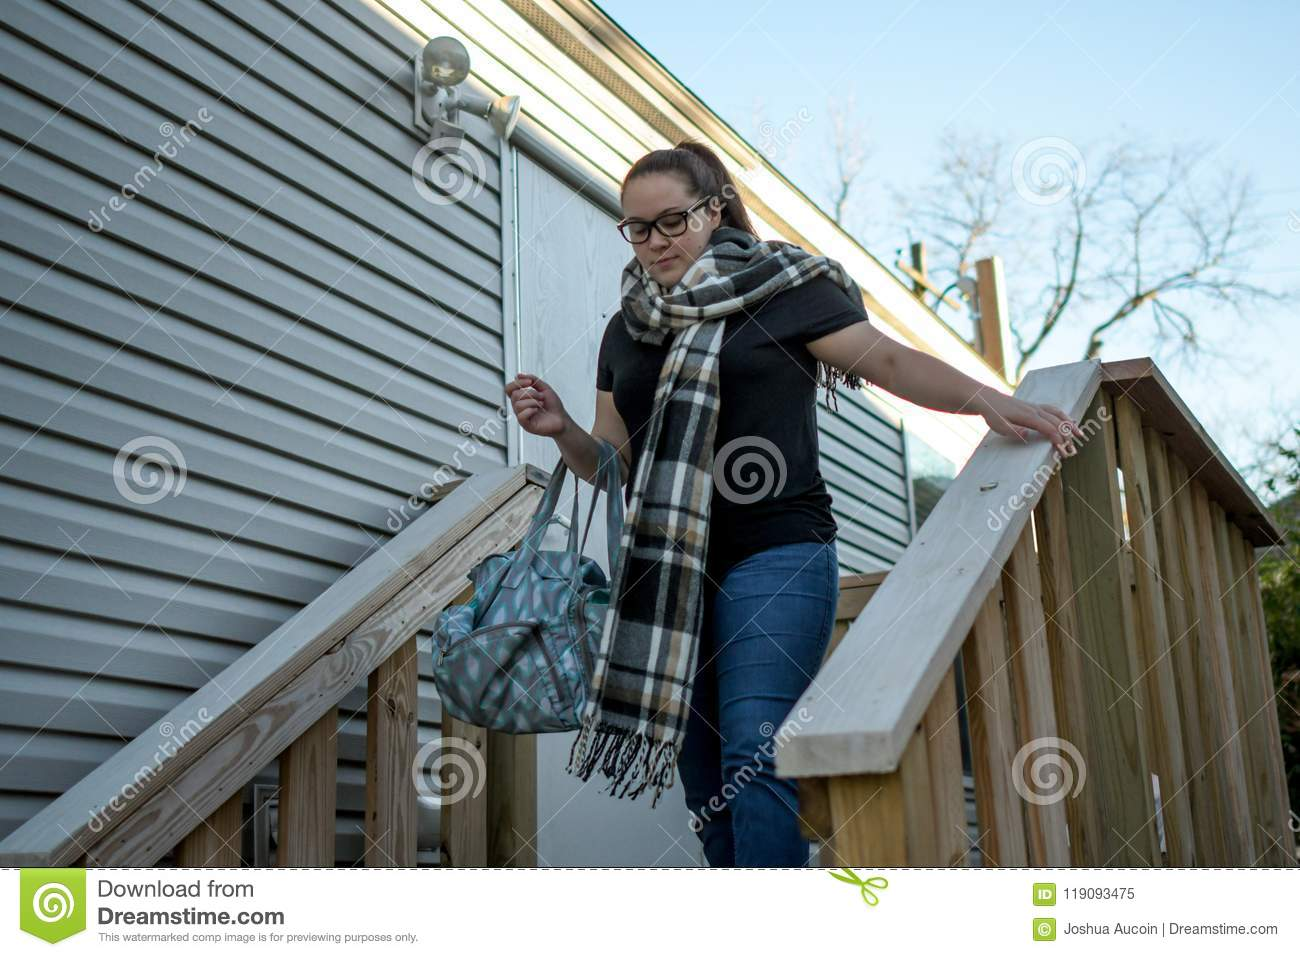 Woman leaves home with bag draped over her arm.